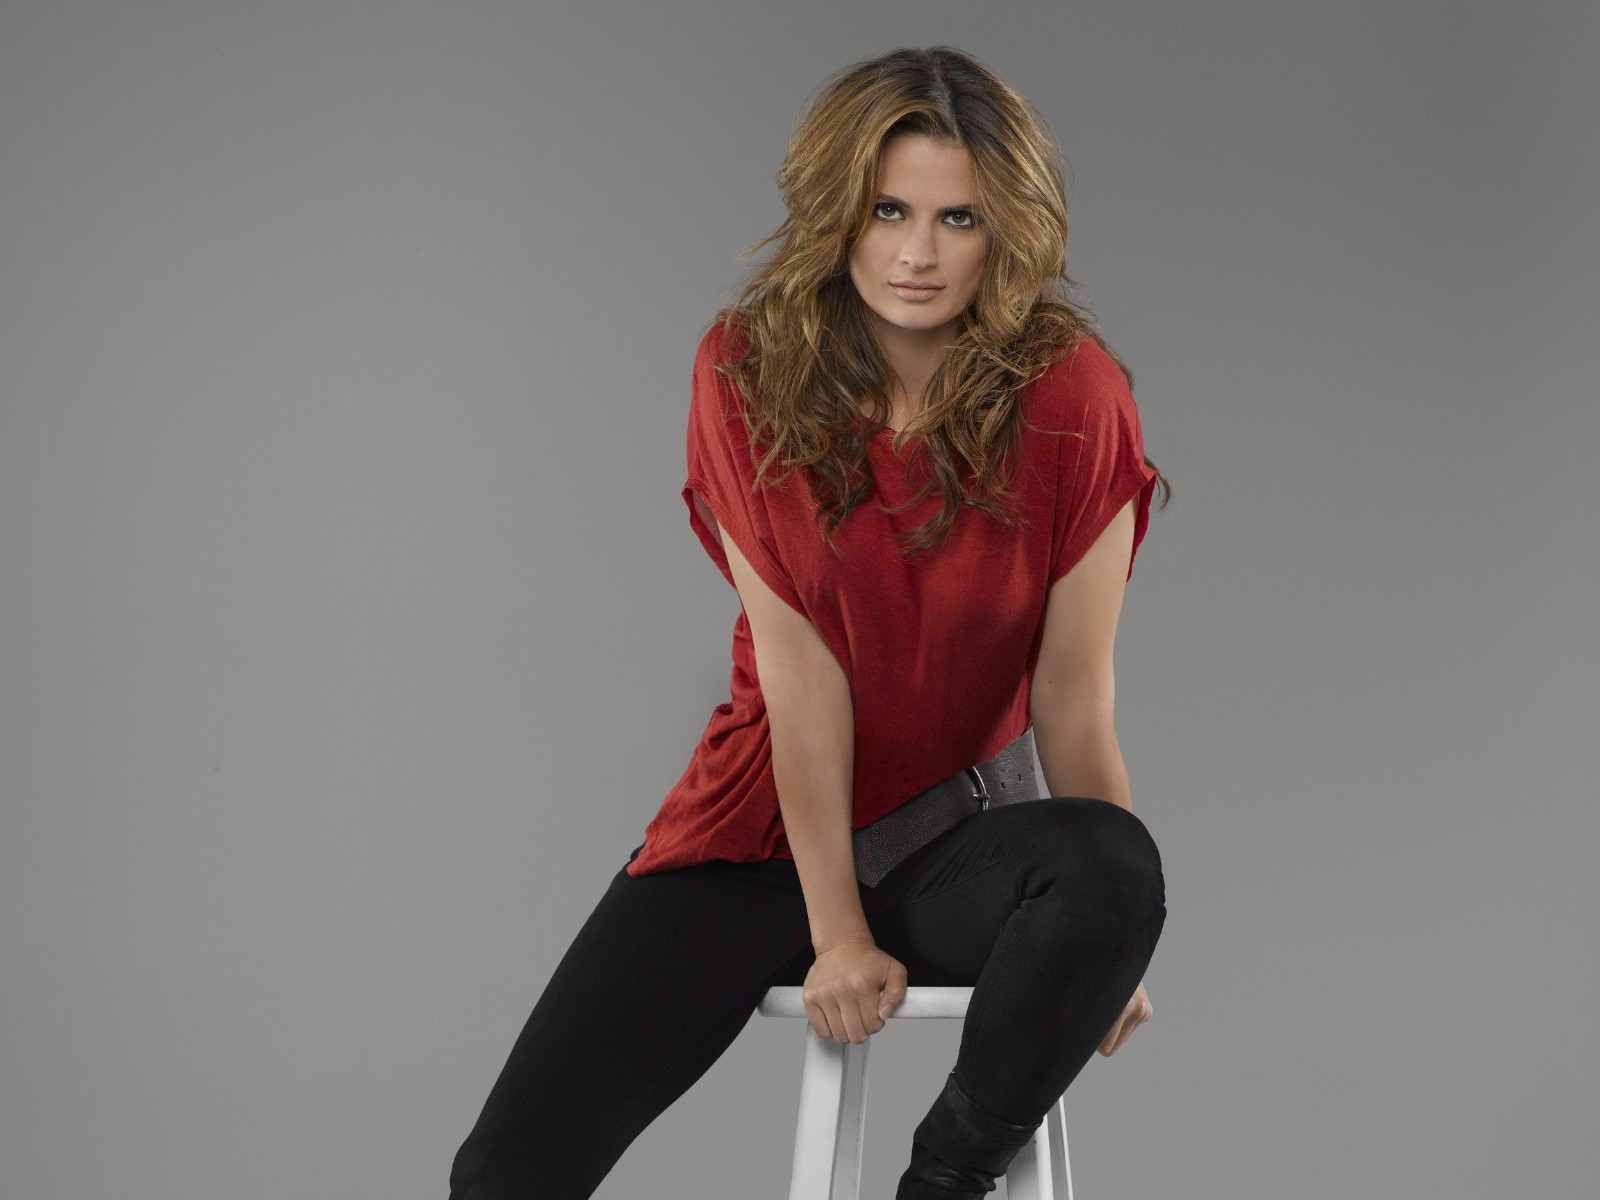 Blondes women actress models Stana Katic Castle TV Series ...